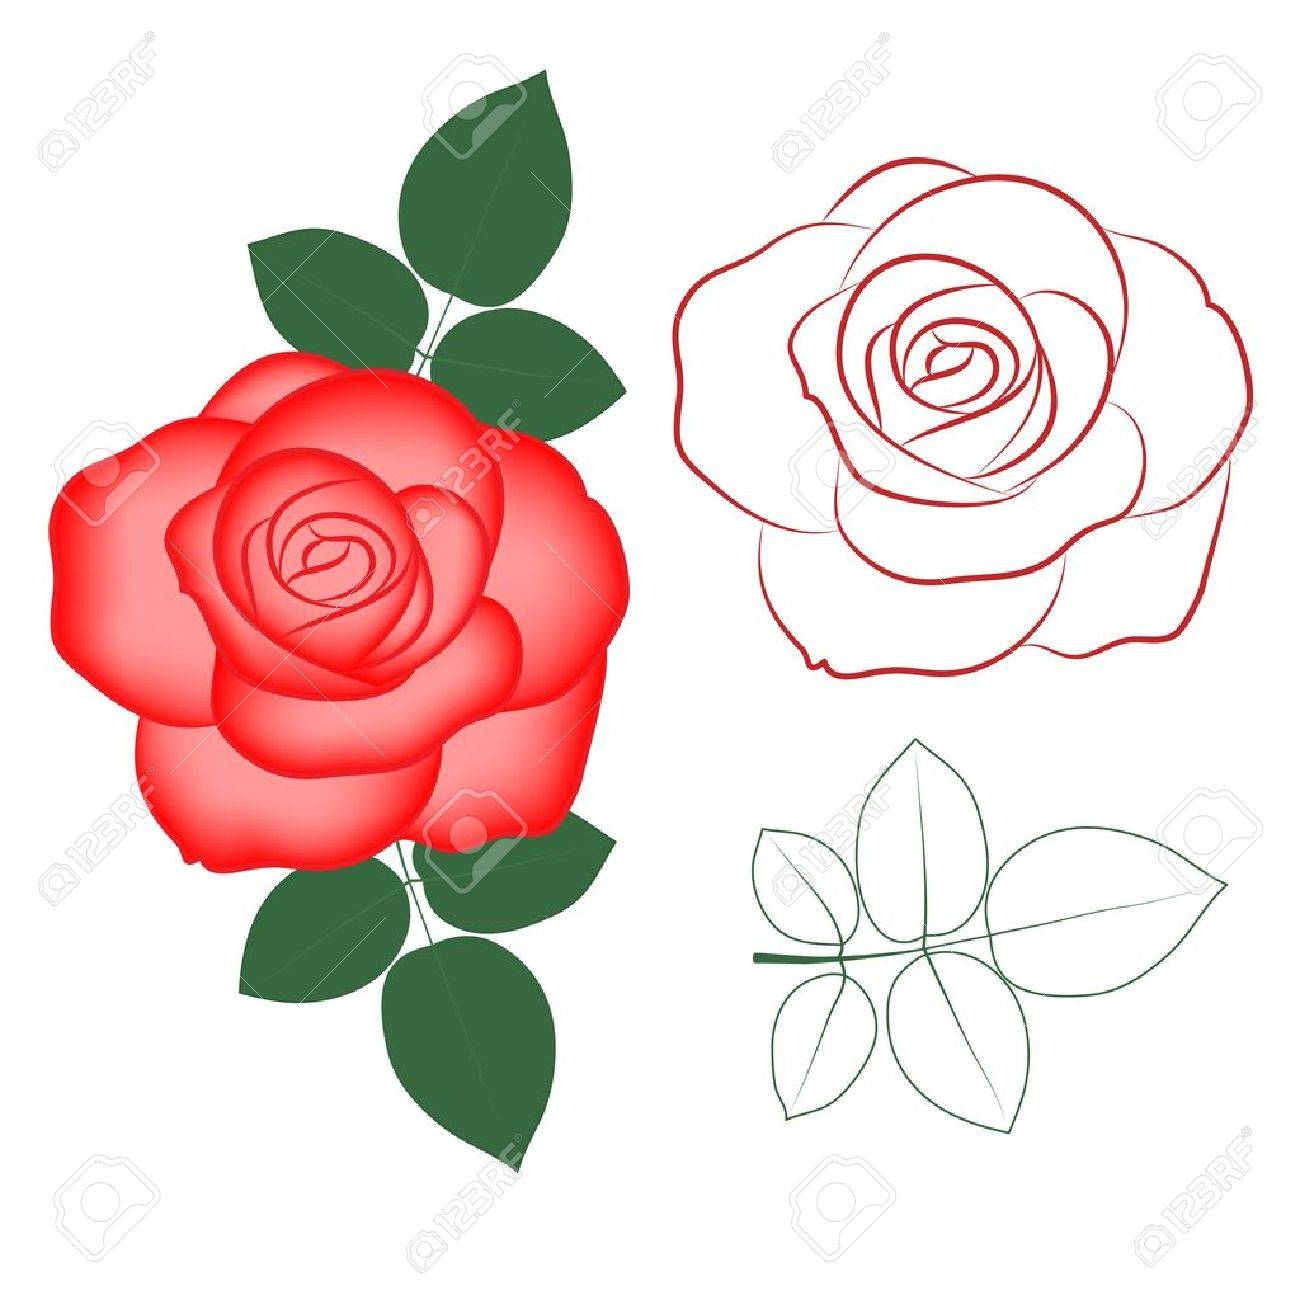 Red Rose Painted Silhouette And In Color, Vector Royalty Free ...